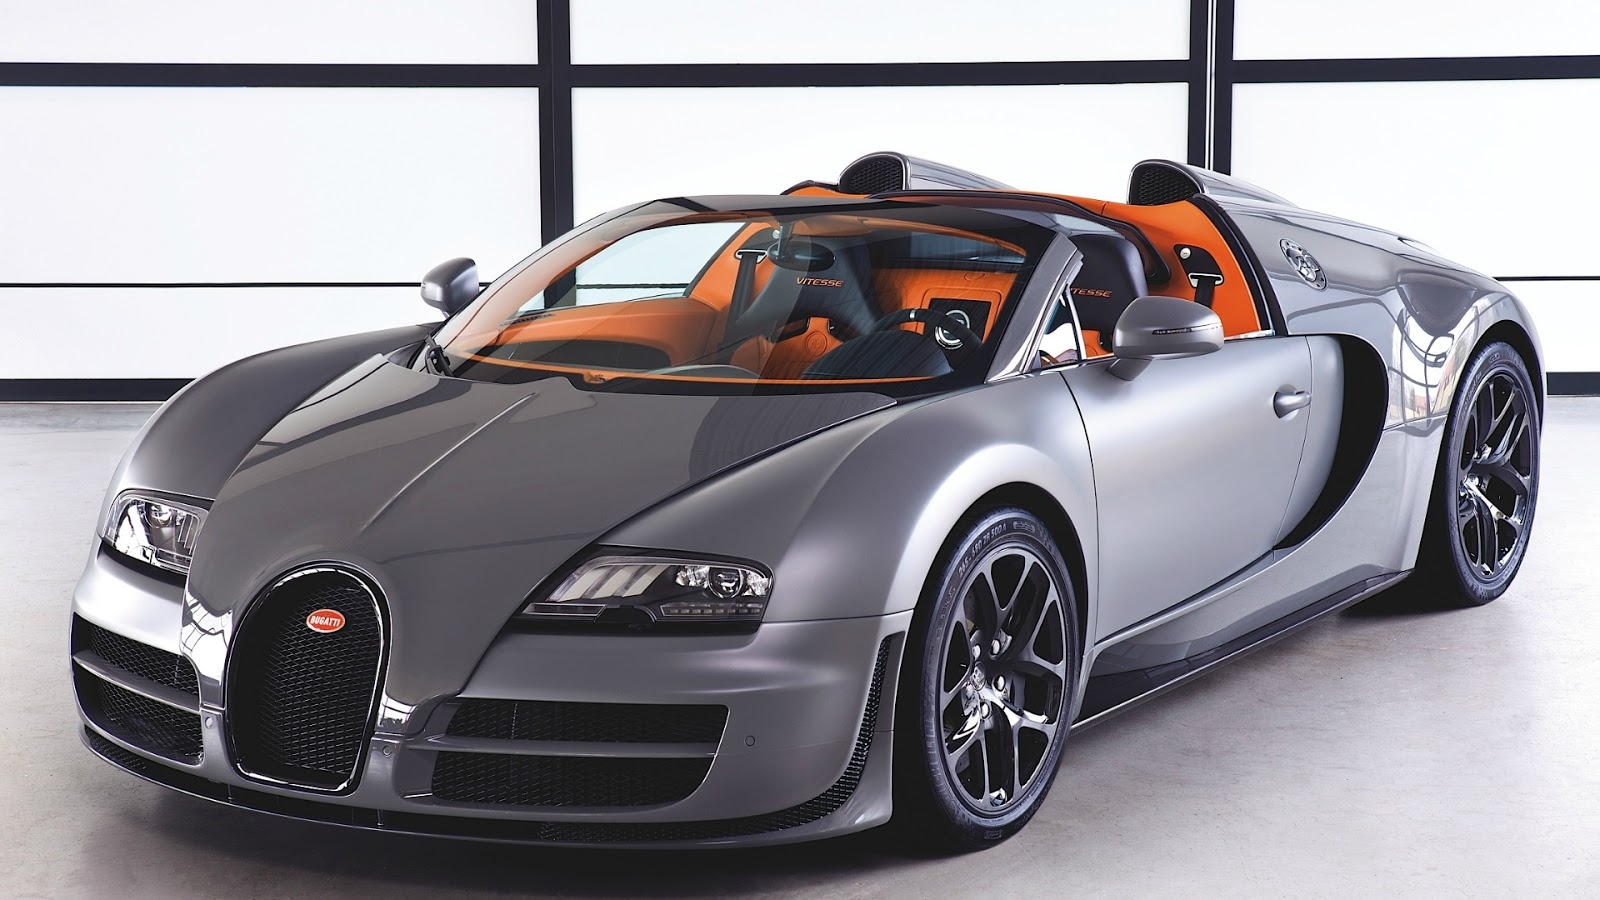 Bugatti veyron hq wallpapers hd wallpapers - Bugatti veyron photos wallpapers ...